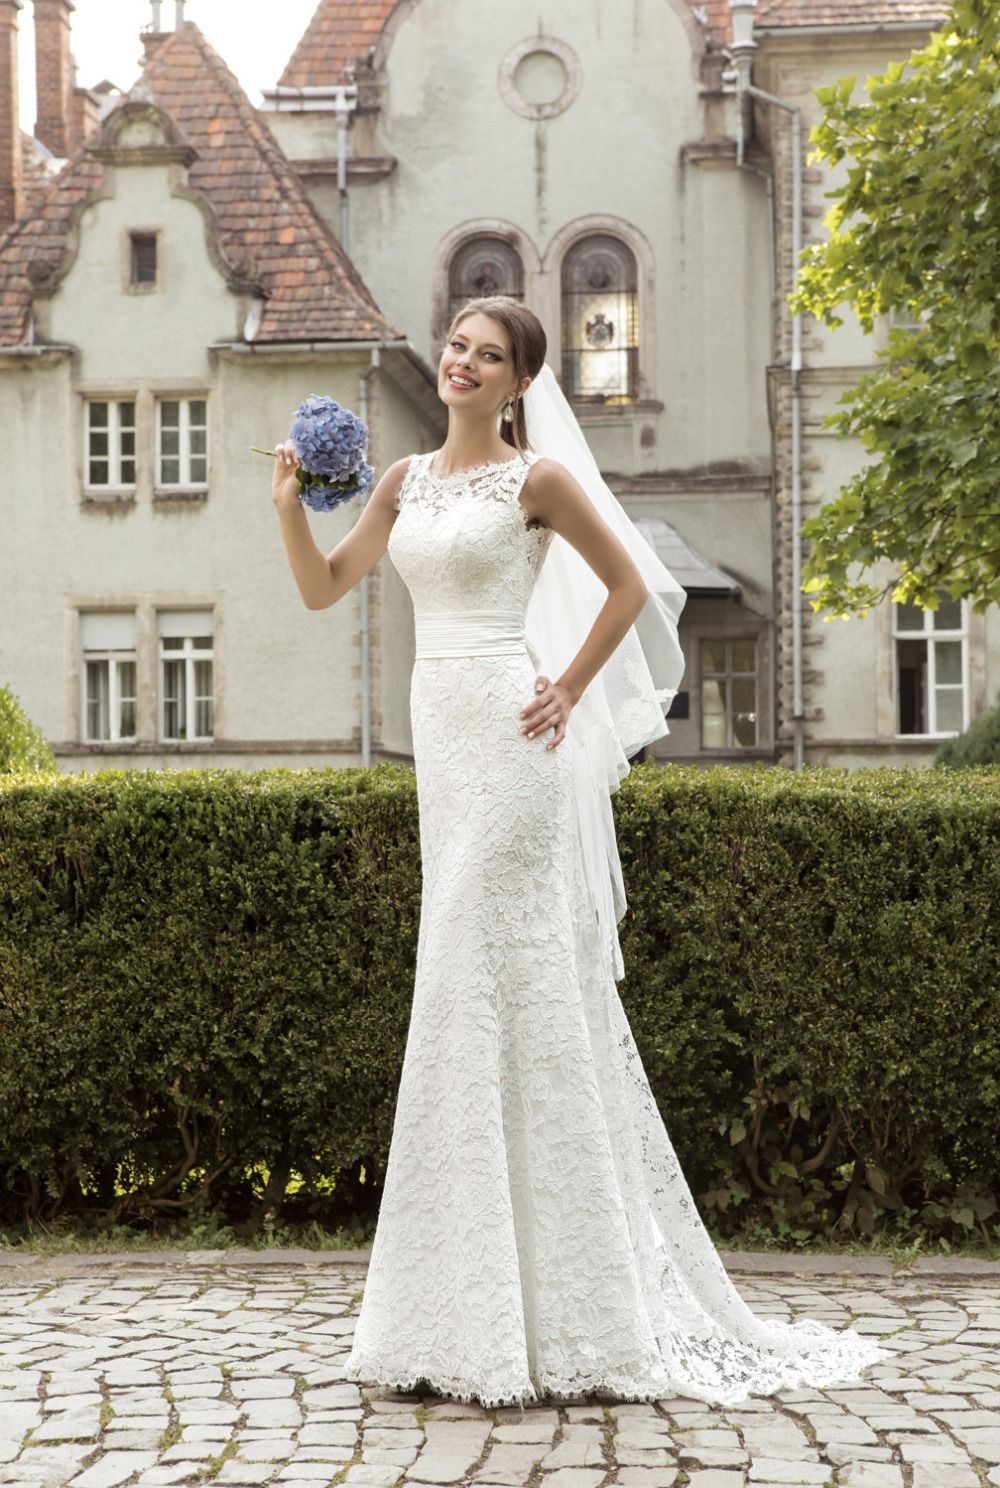 56486a91a Customized sleeveless Slim fitting lace Wedding Dresses wide straps low  back bridal dresses wedding gown vestidos novia ASWD09-in Wedding Dresses  from ...